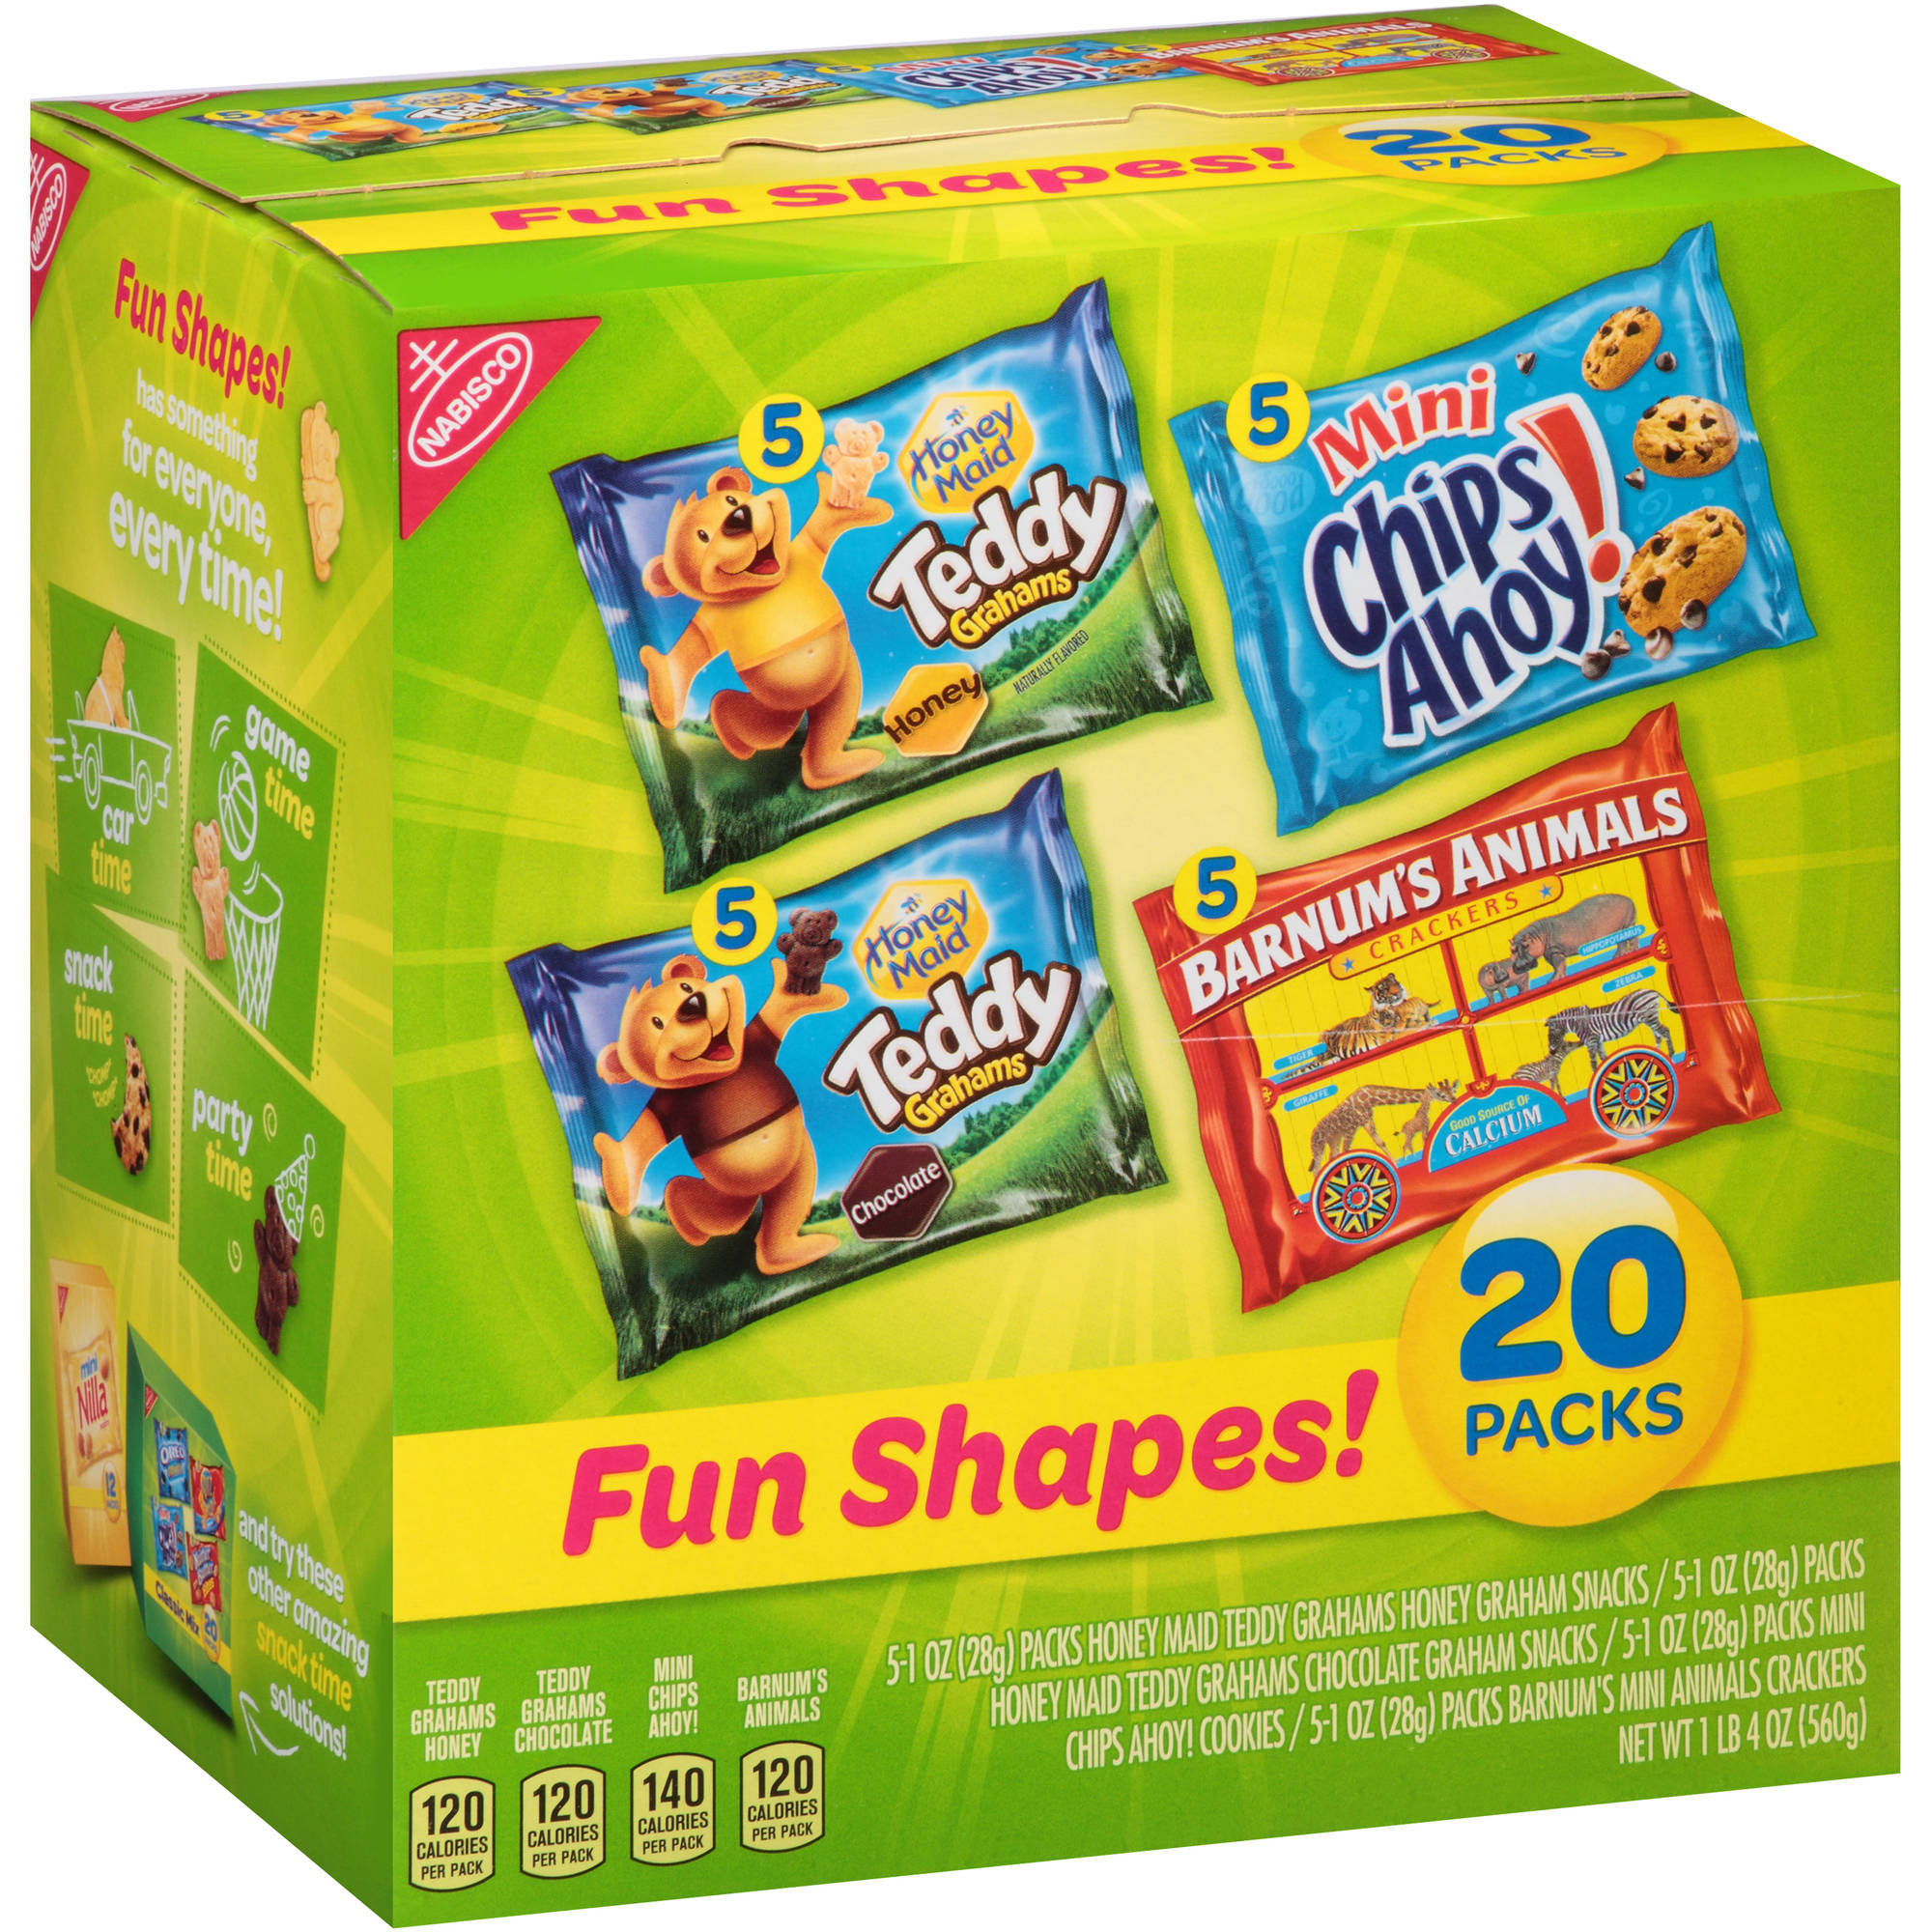 Nabisco Fun Shapes! Cookies & Crackers Variety Pack, 1 oz, 20 count